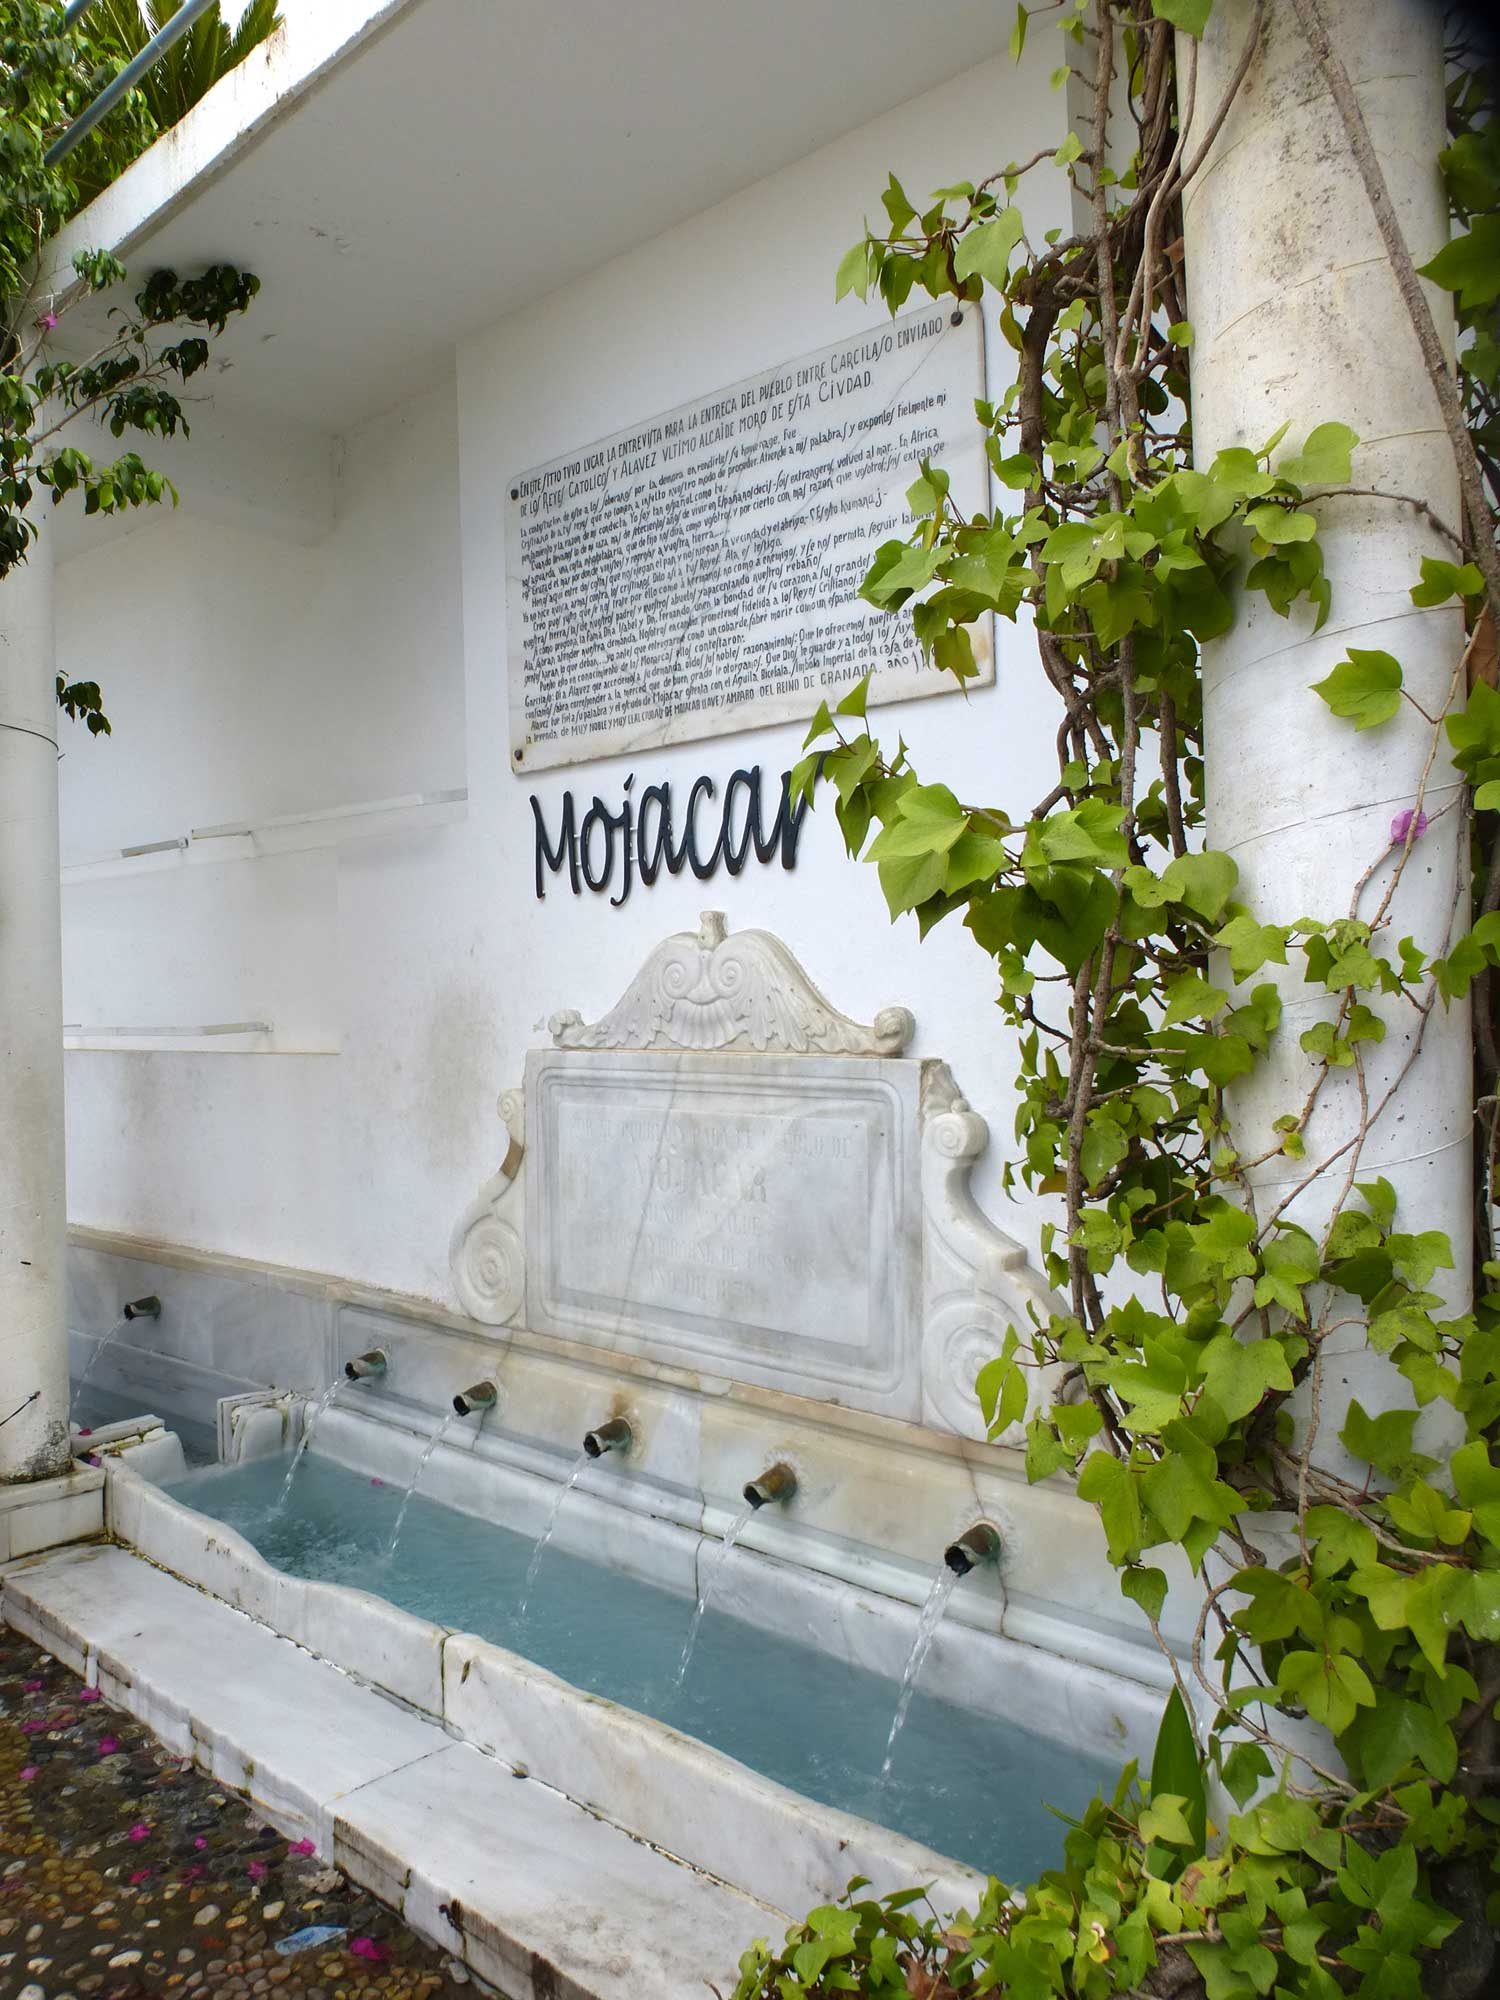 mojacar-fountain.jpg